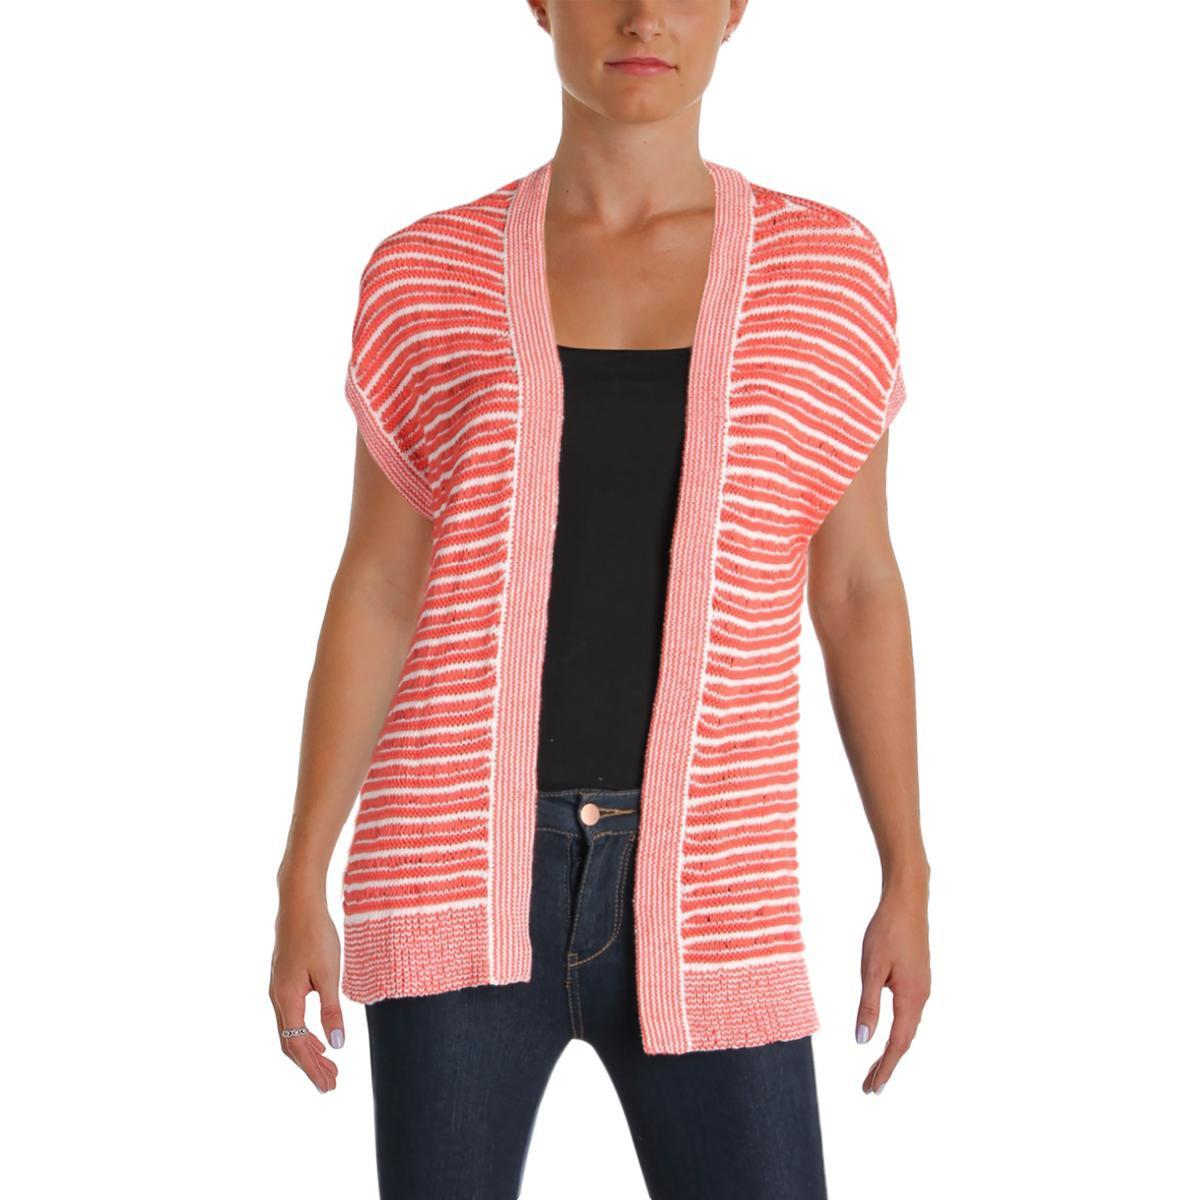 Cardigan with Cap Sleeves